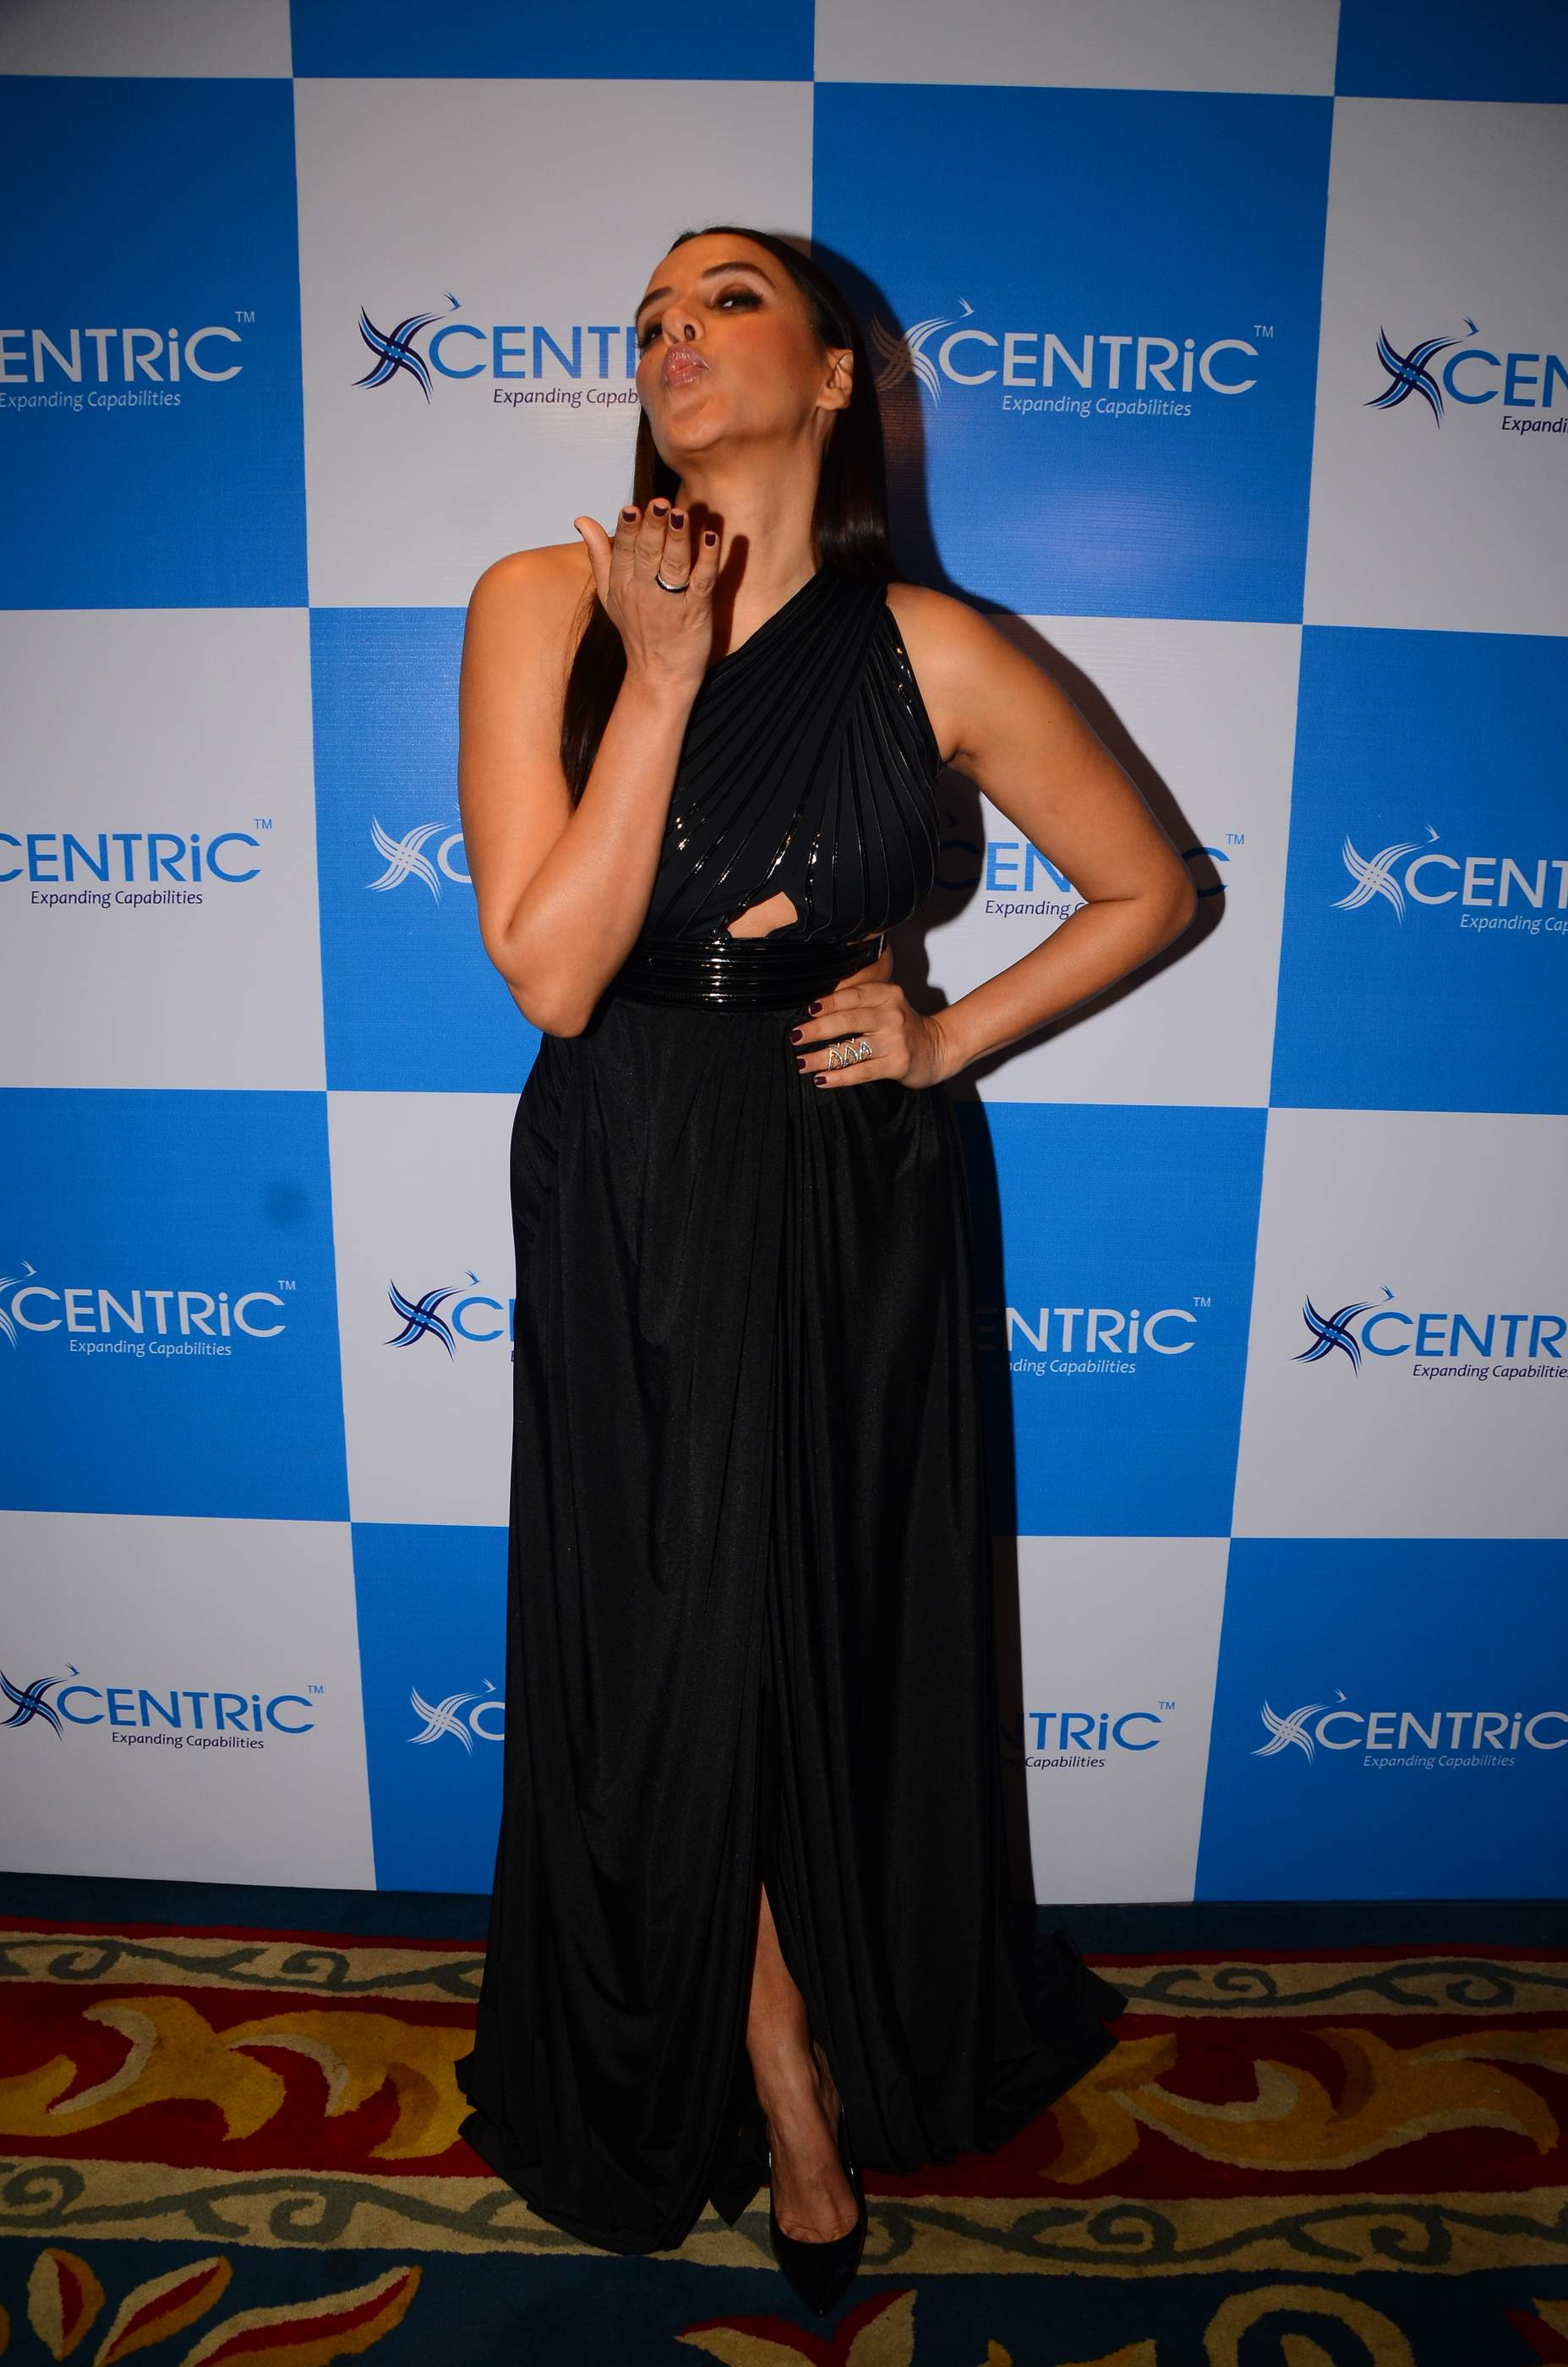 HOT Photo Stills Of Beauty Queen Neha Dhupia | Xcentric HOT Photo Stills Of Beauty Queen Neha Dhupia | Xcentric Neha Dhupia Xcentric 18